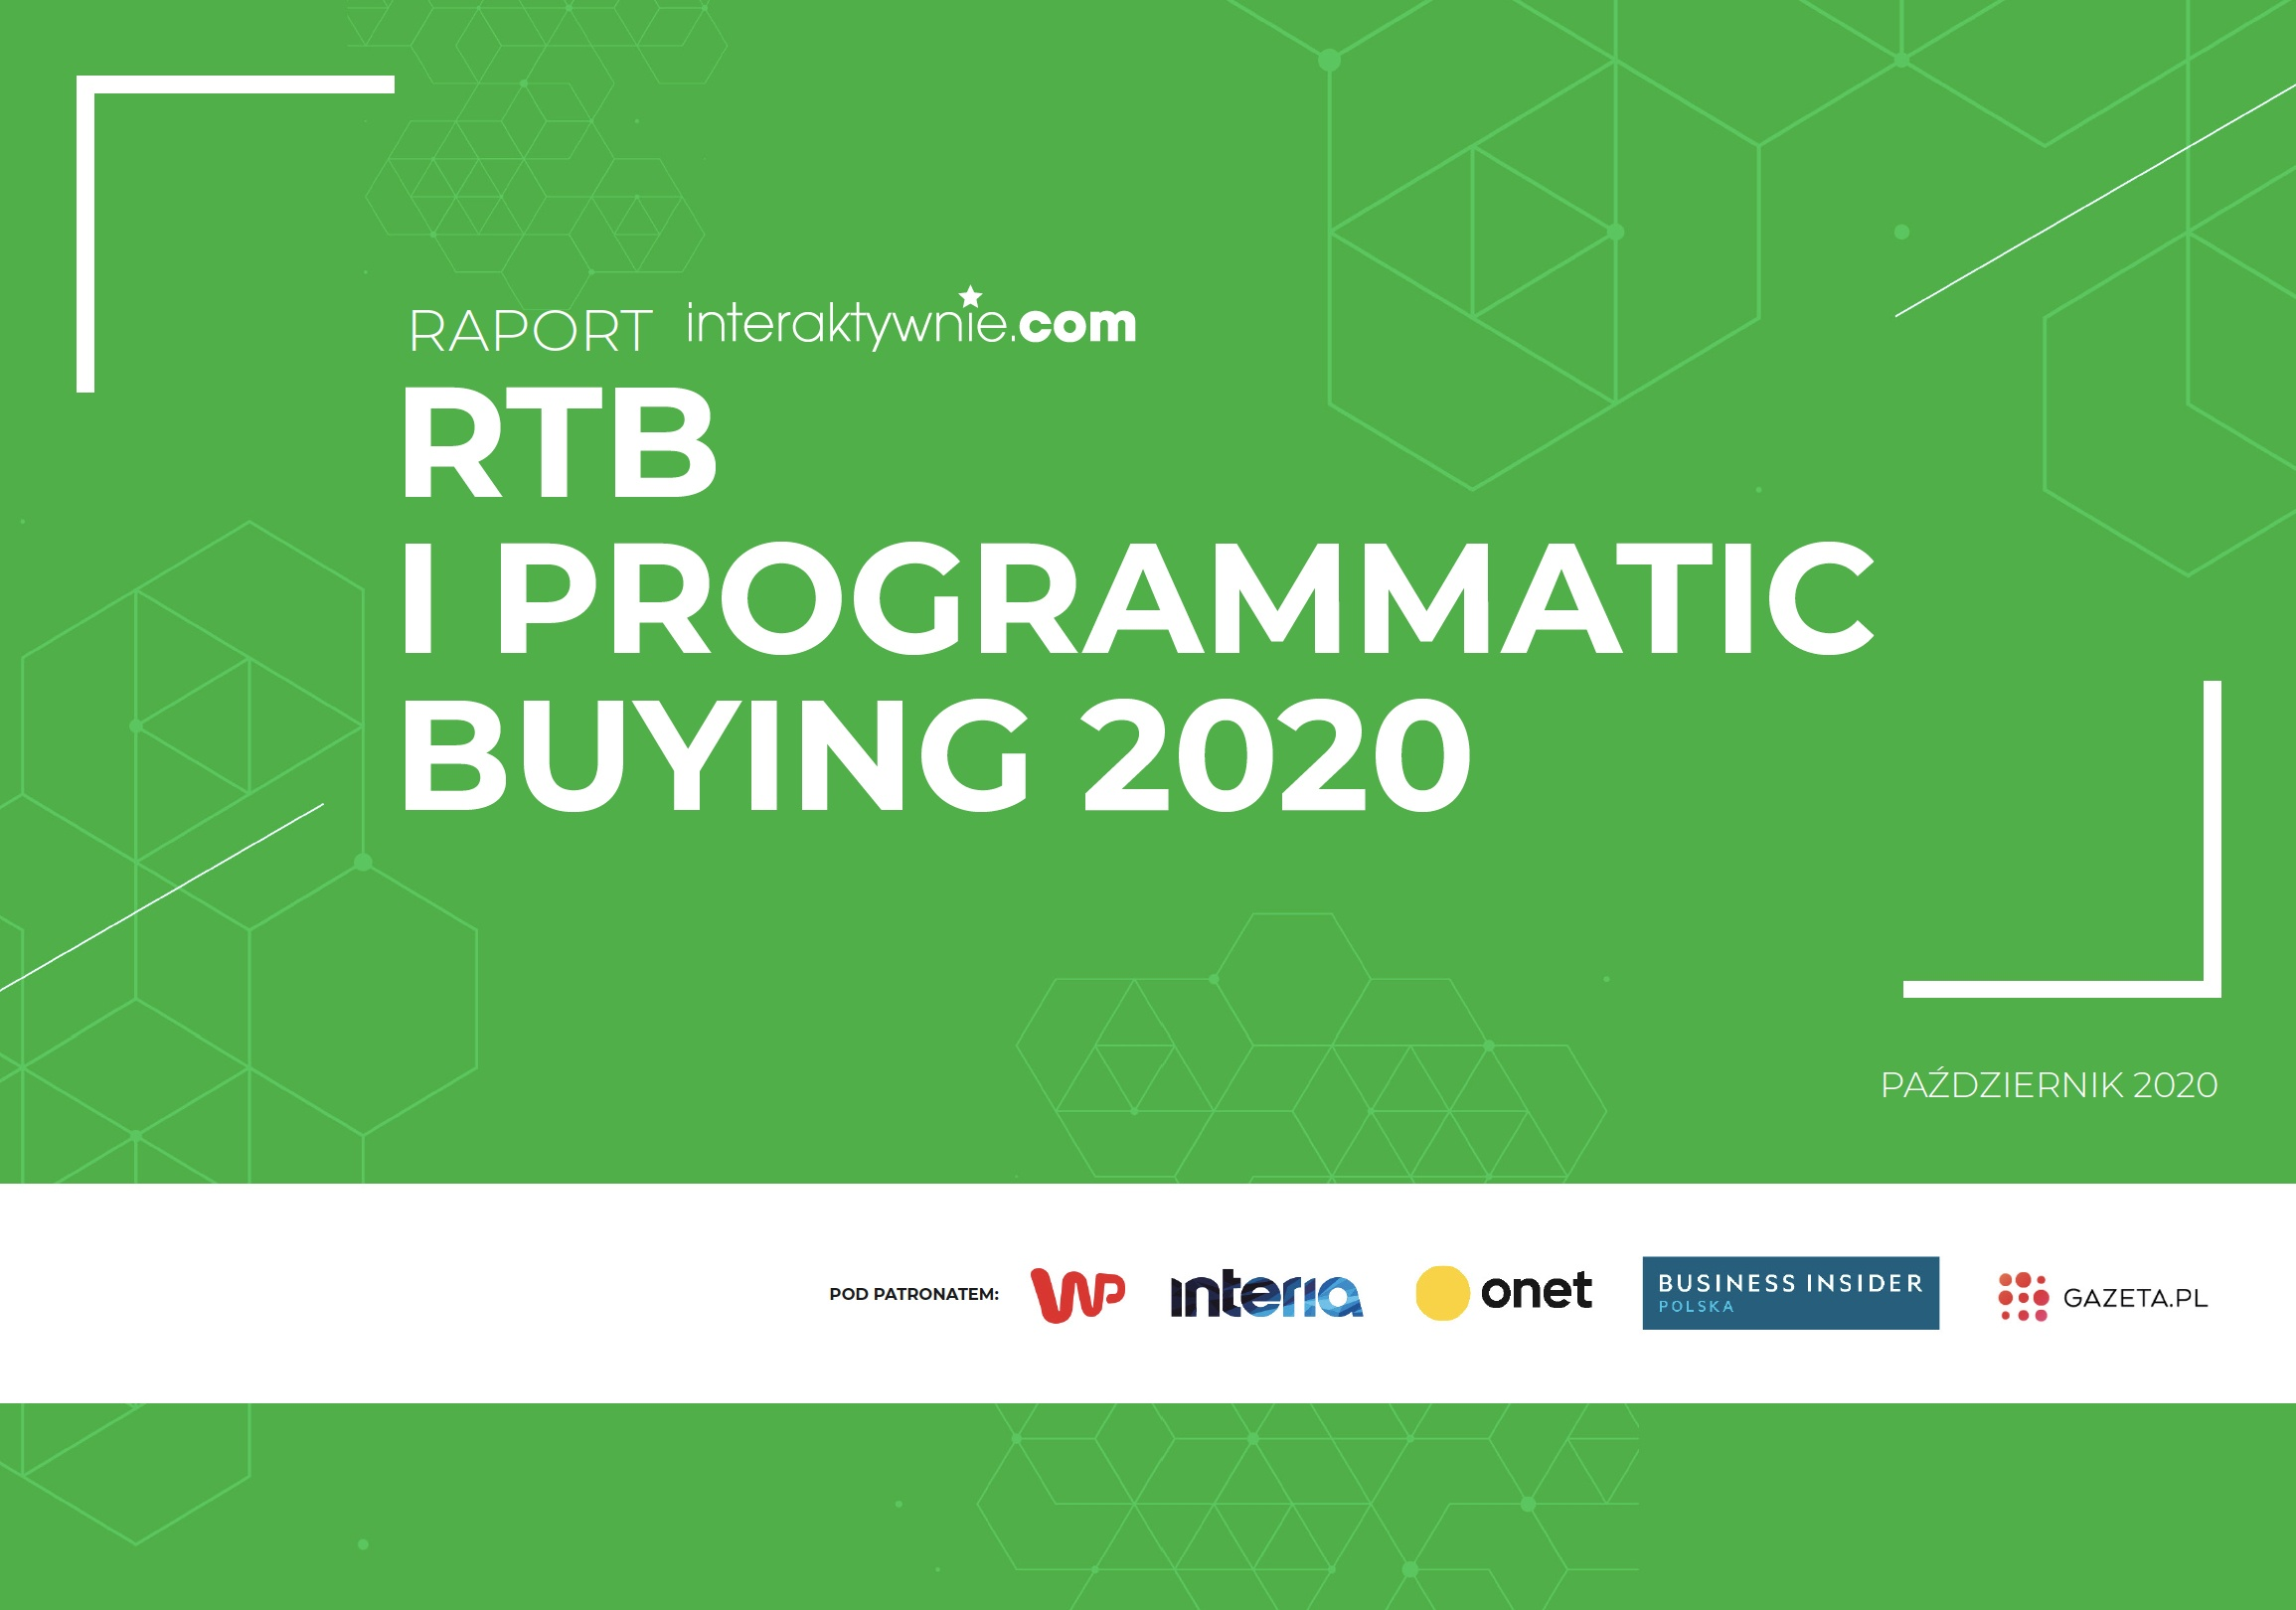 Raport Programmatic Buying i RTB